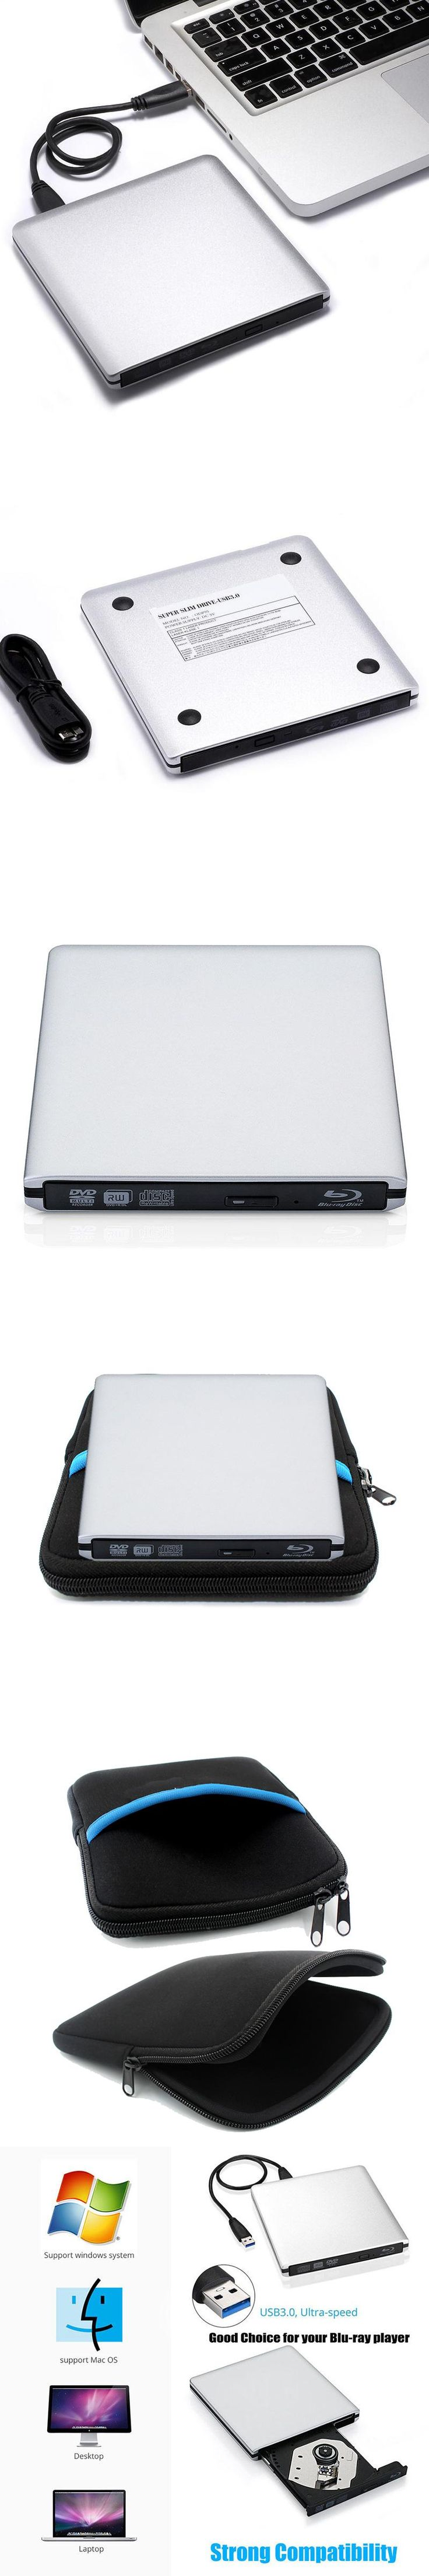 Blu-ray drive External USB 3.0 DVD RW Optical drive Combo CD/DVD ...